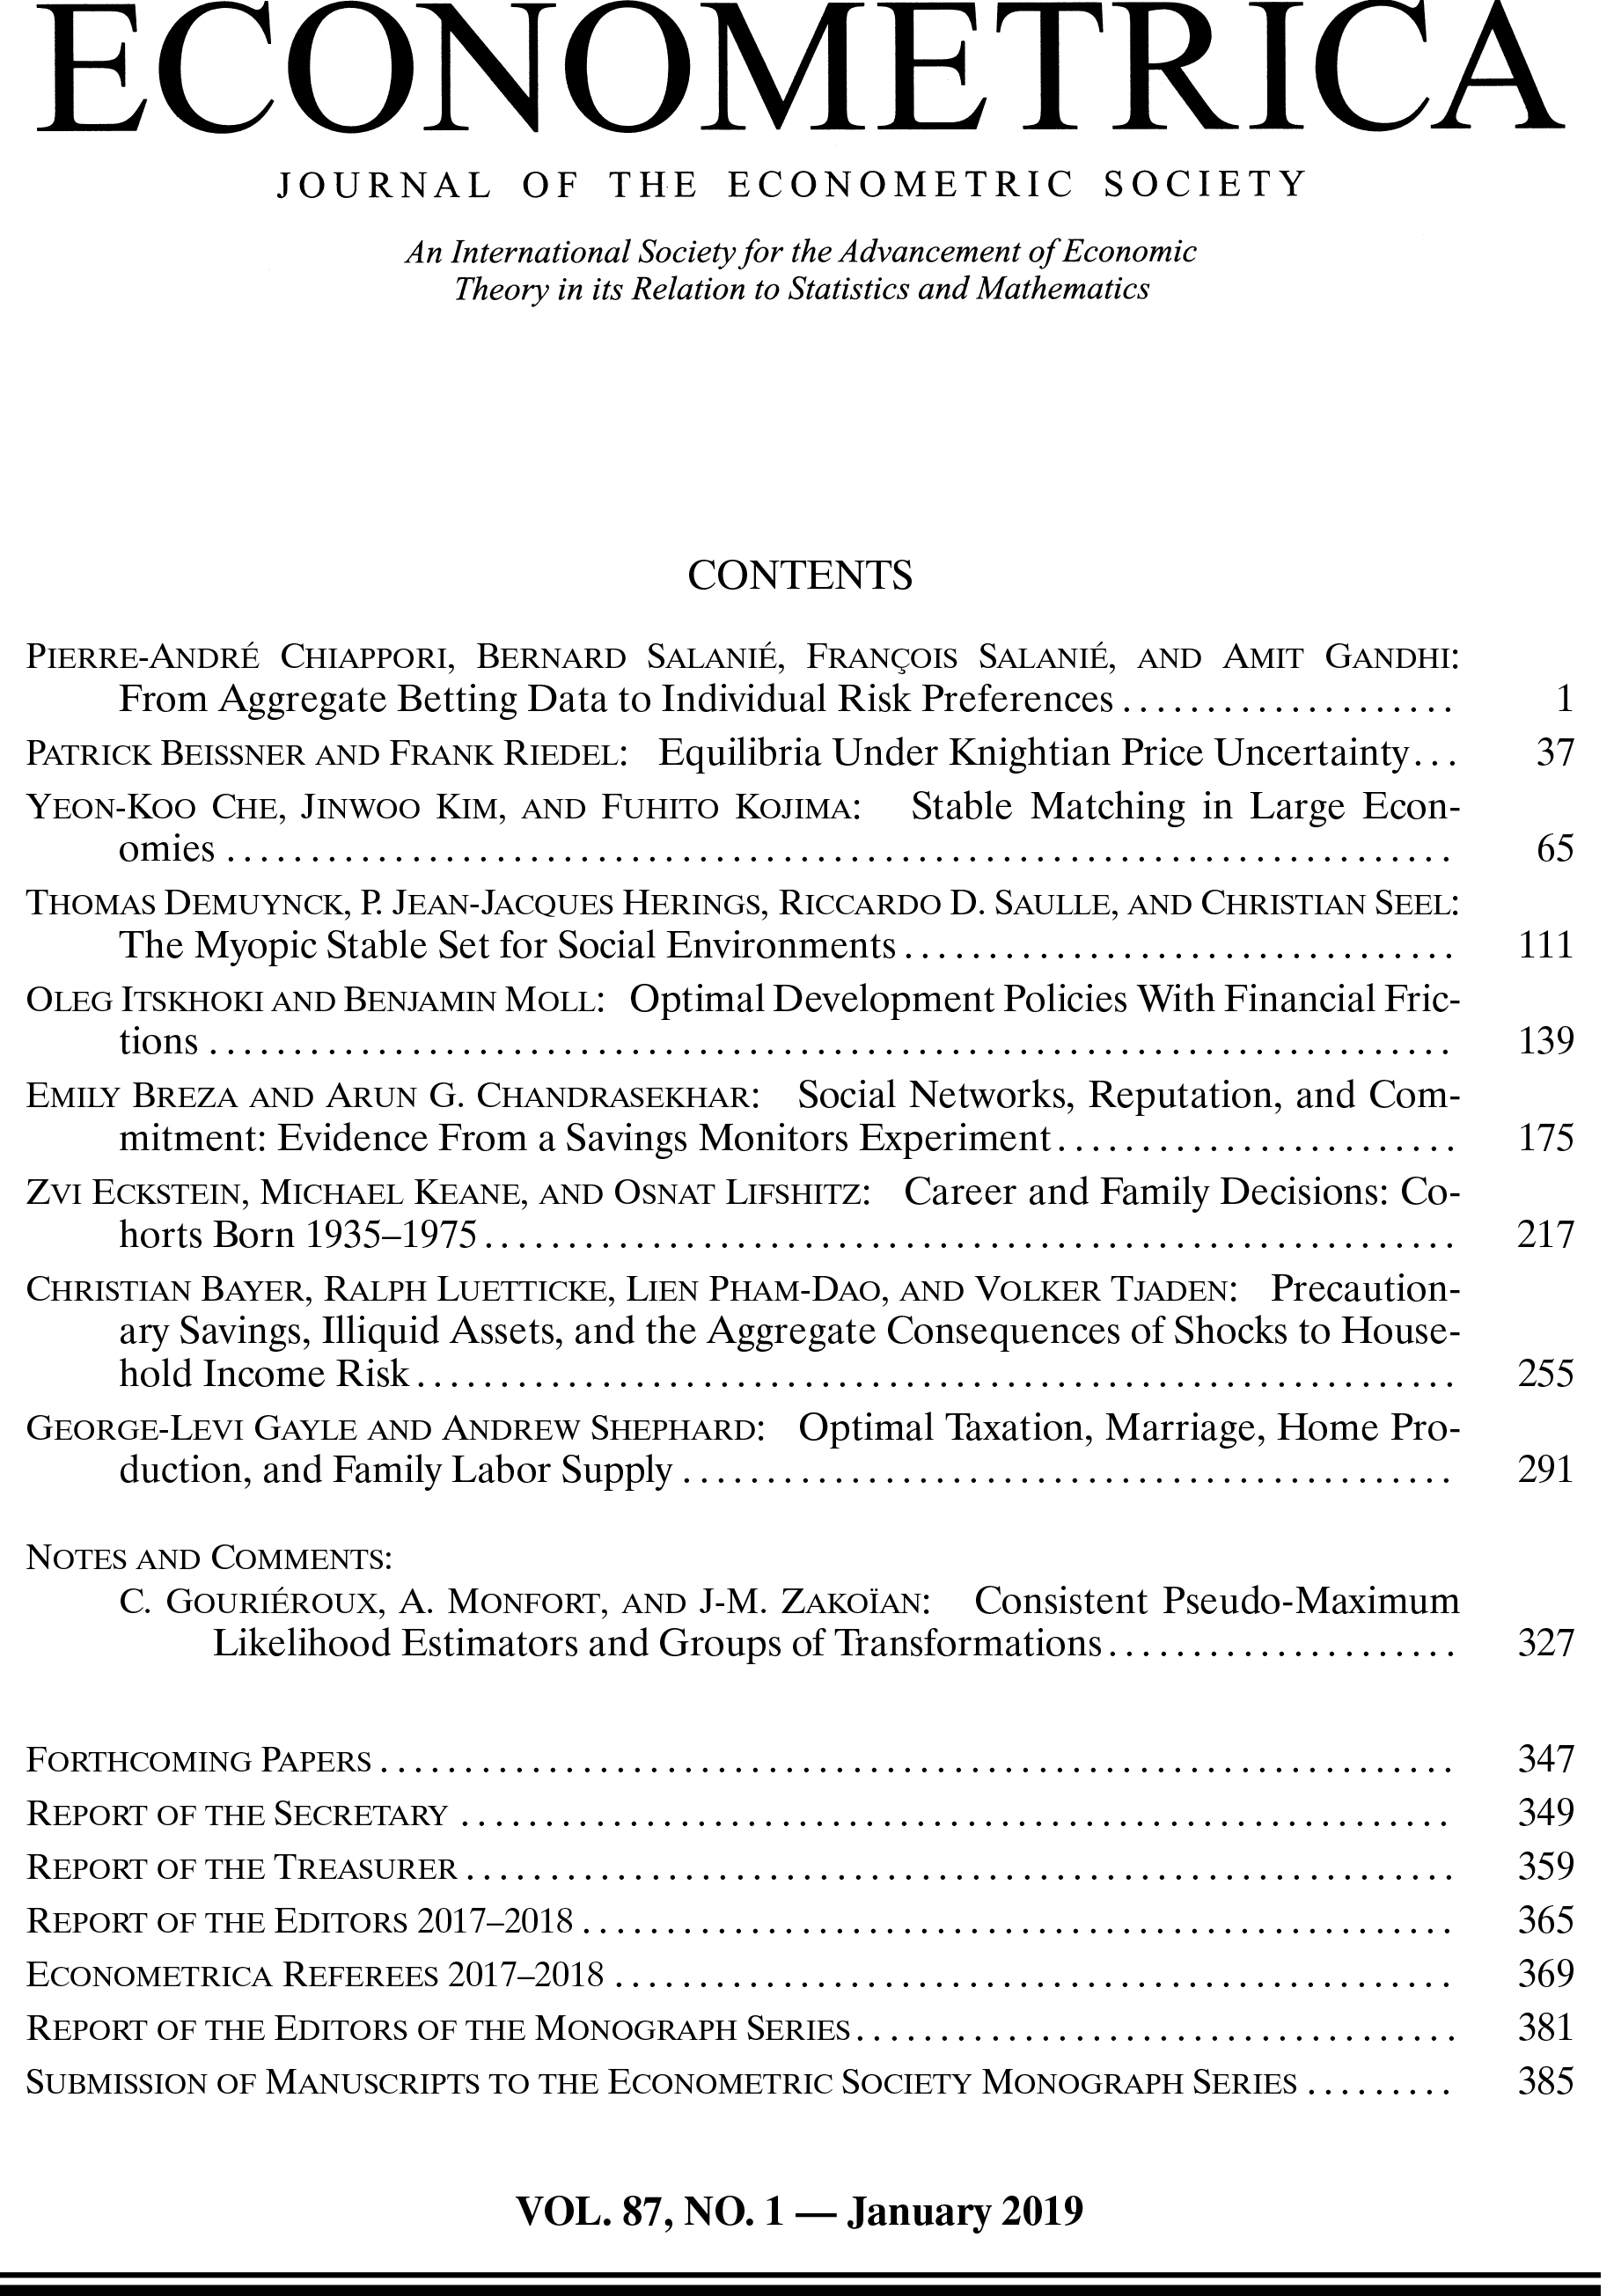 Econometrica JAN 2019, VOLUME 87, ISSUE 1